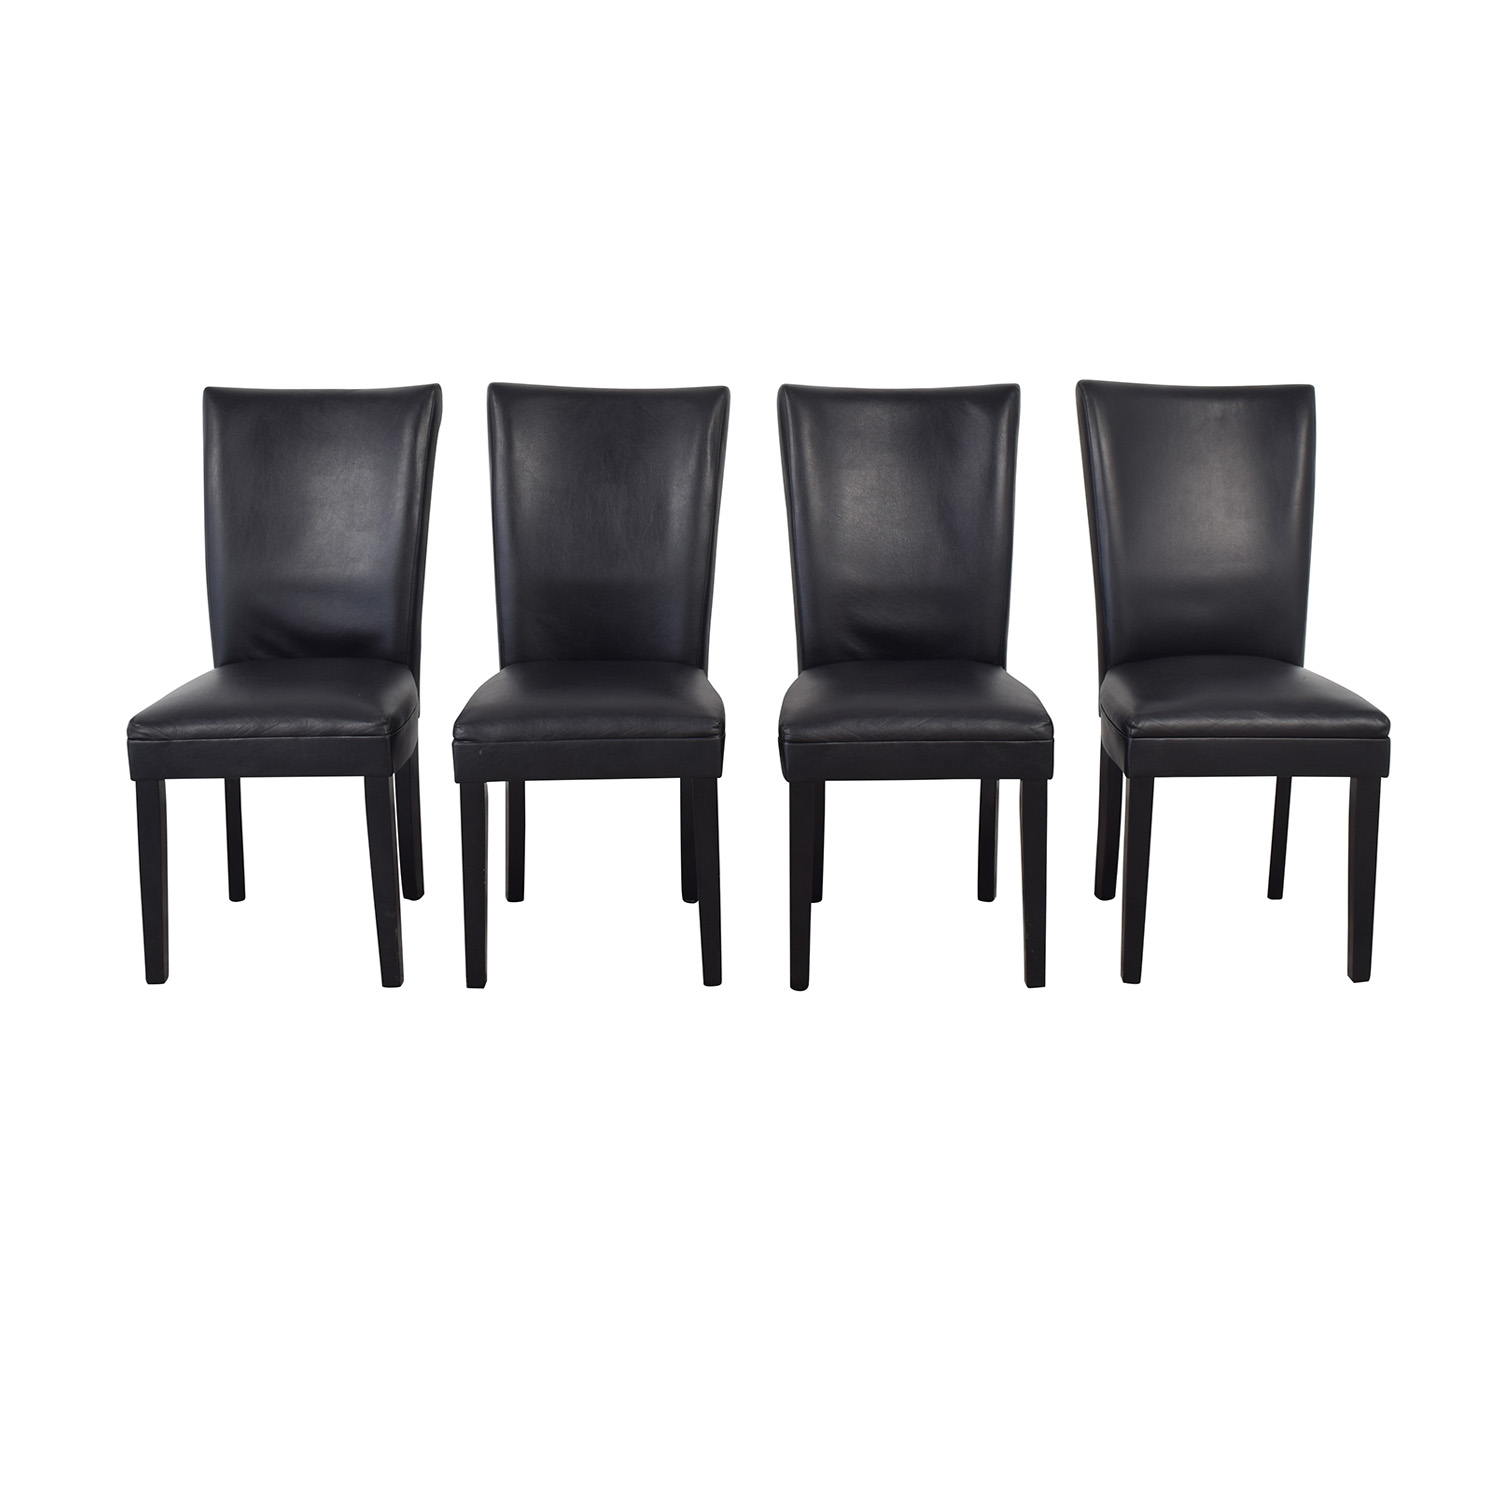 Steve Silver Co Steve Silver Co Dining Chairs coupon